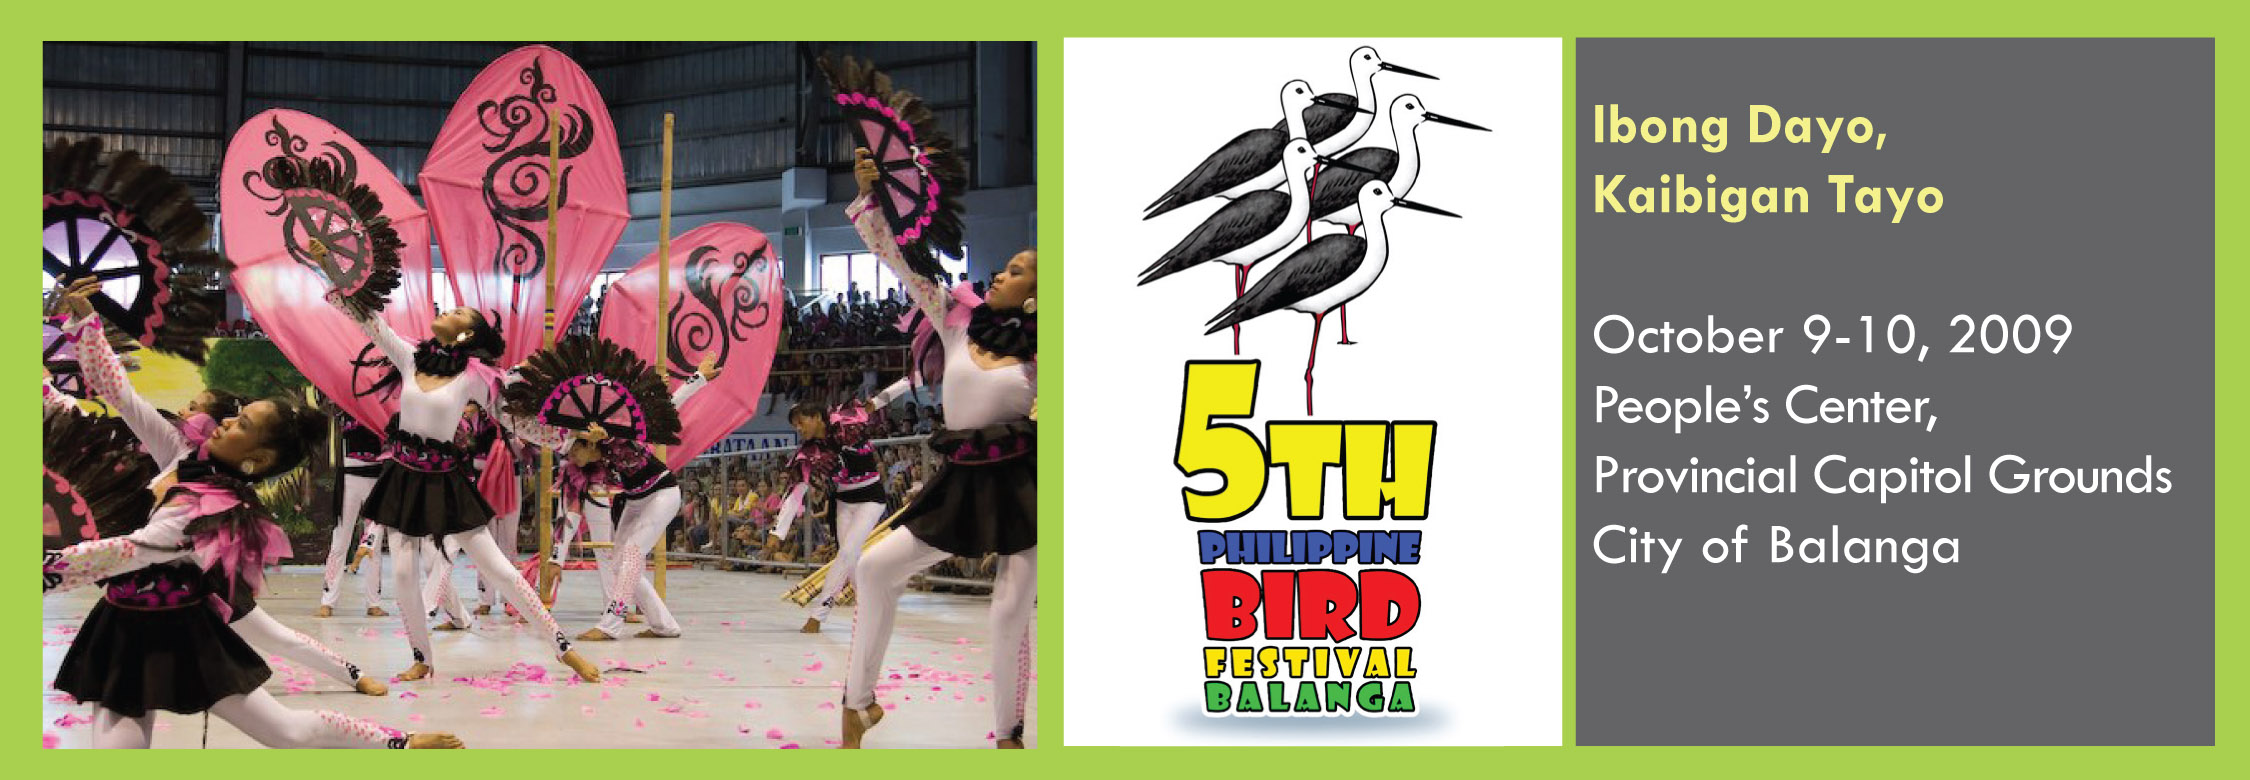 5th Philippine Bird Festival